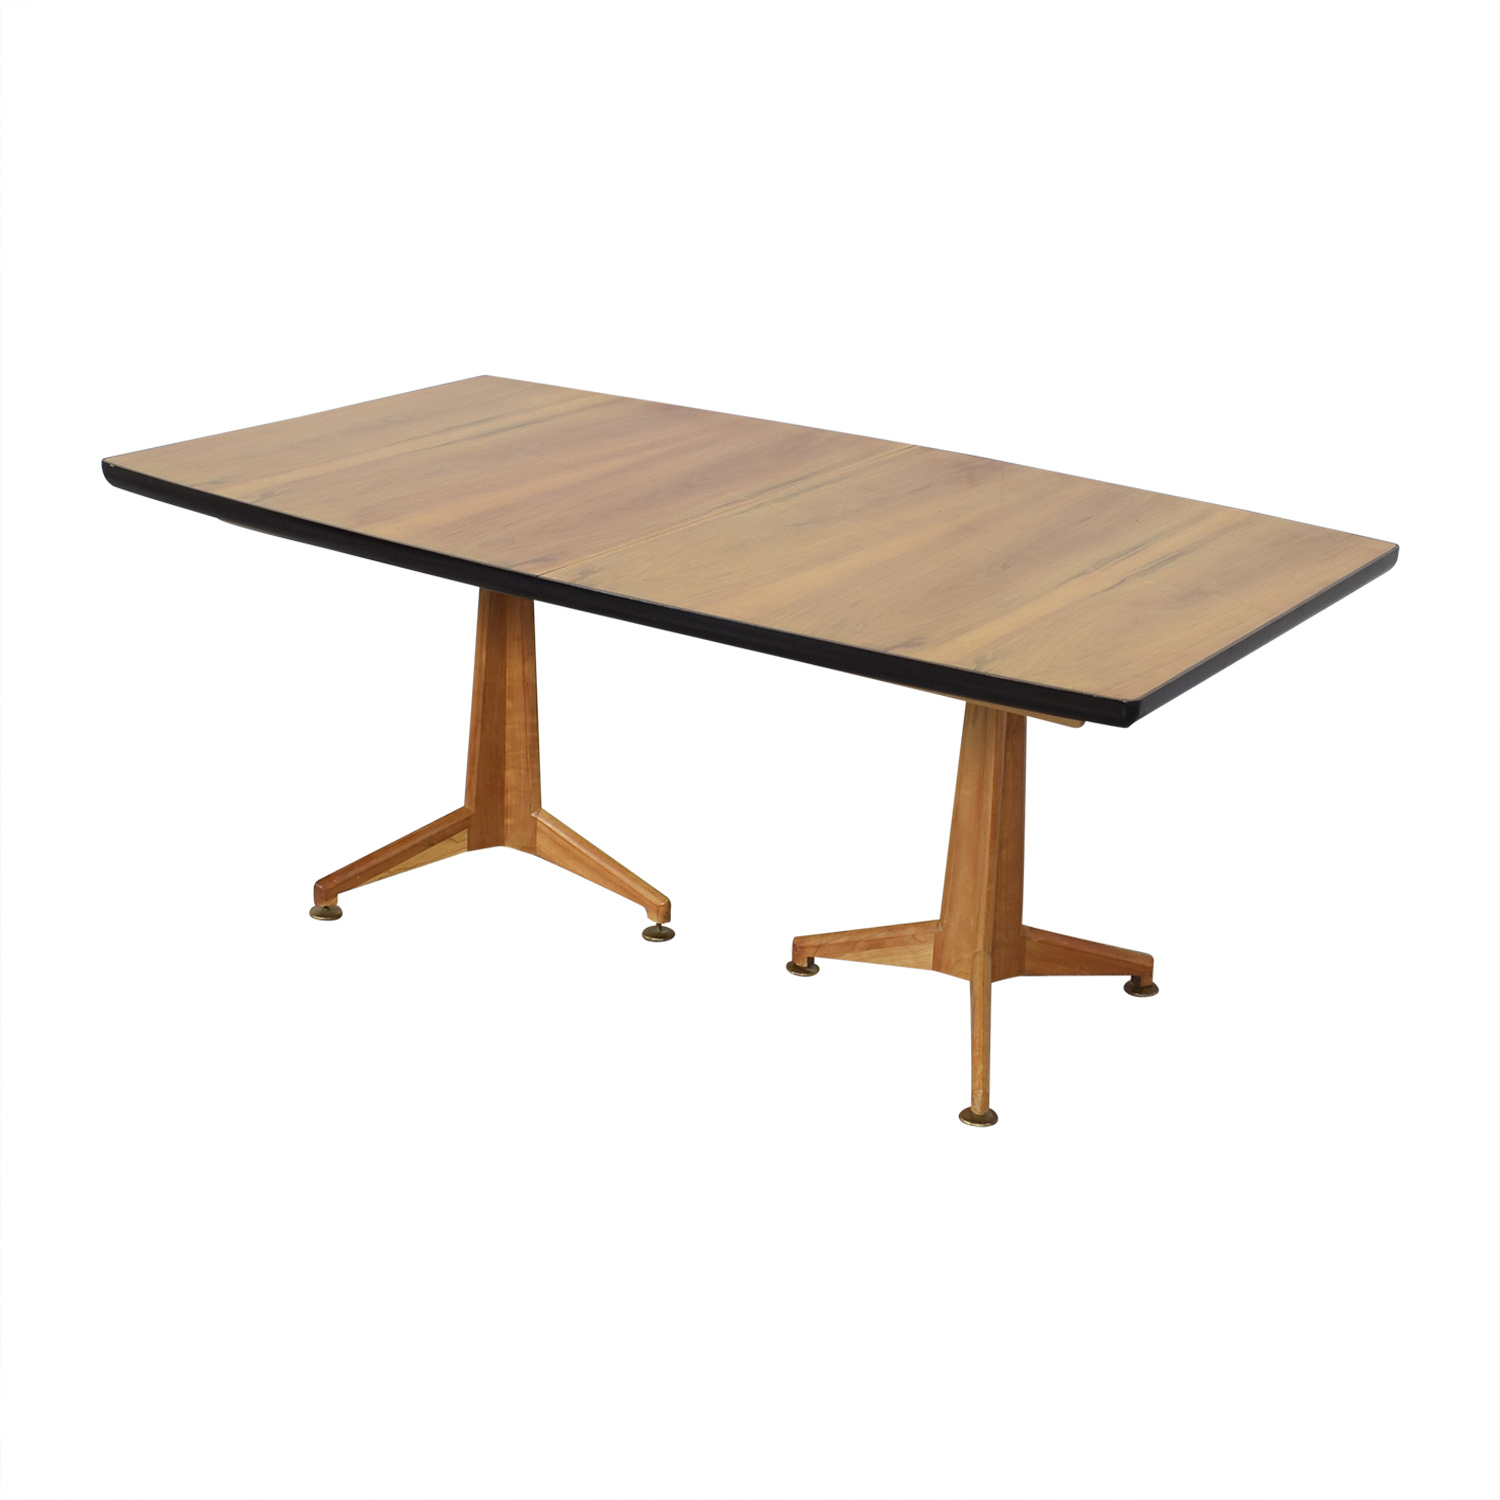 Johnson Furniture Johnson Furniture Mid Century Modern Extendable Dining Table on sale